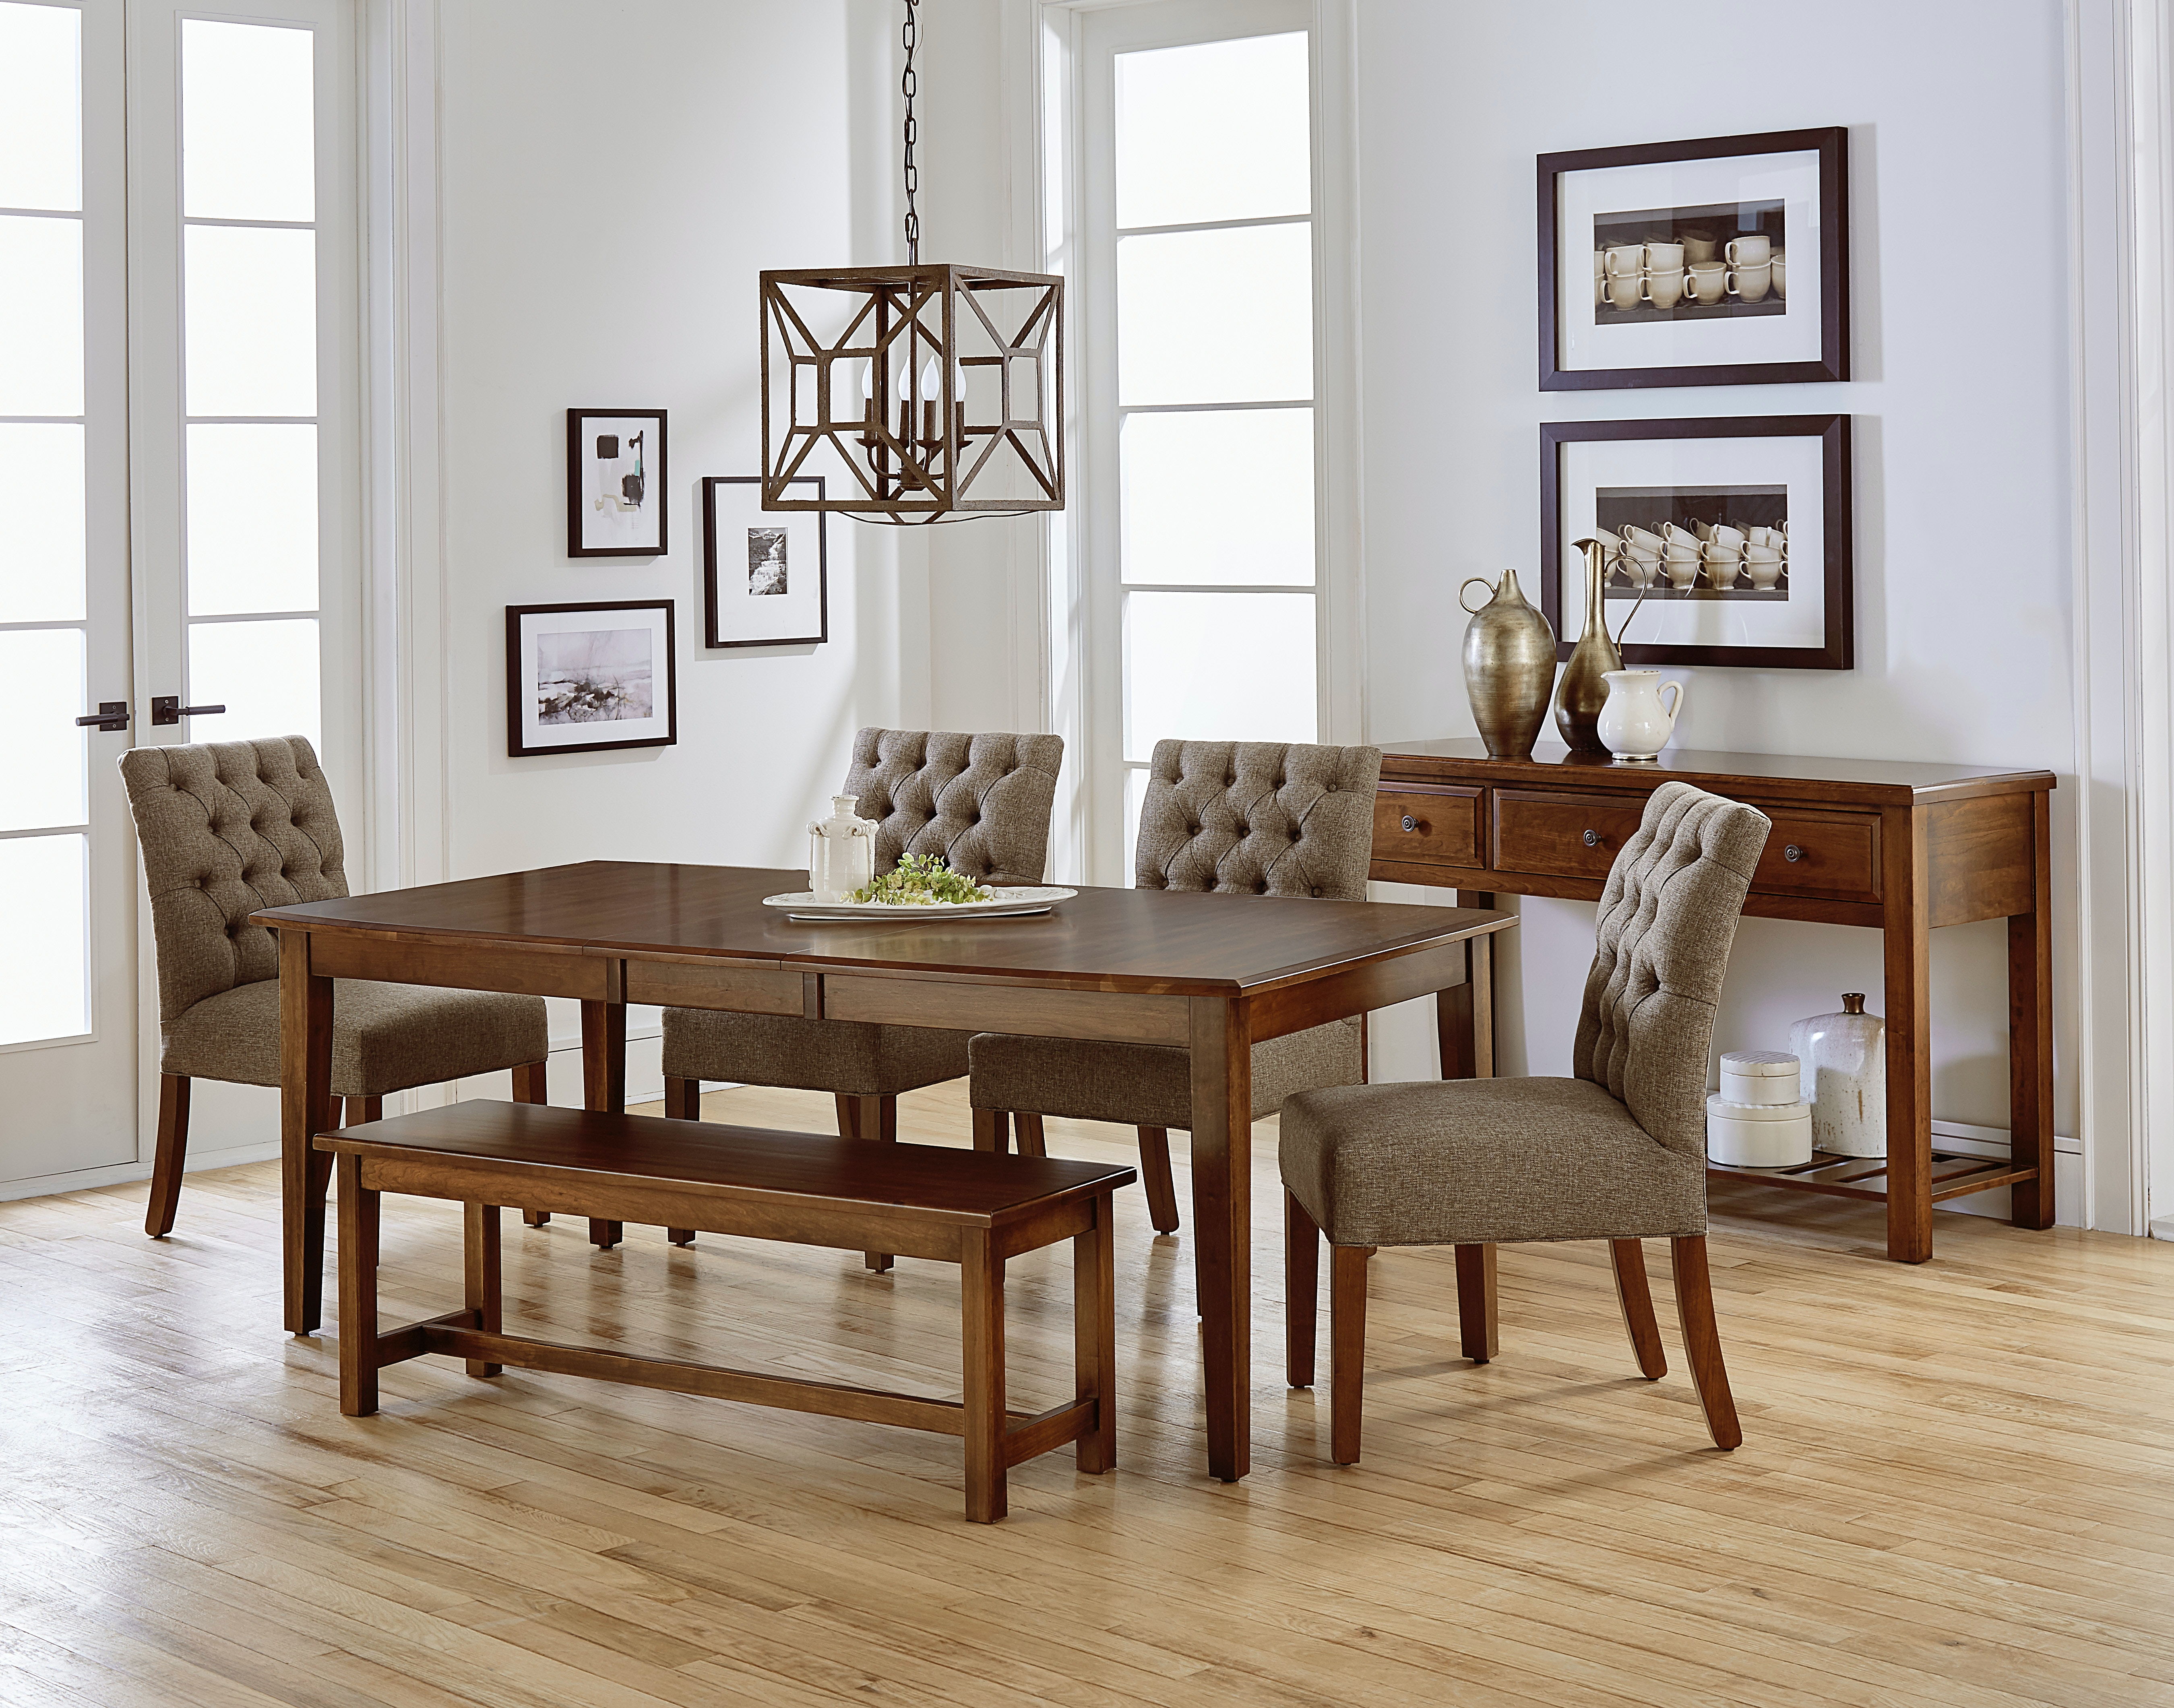 Artisan U0026 Post Boat Table   Simply Dining ALE 200